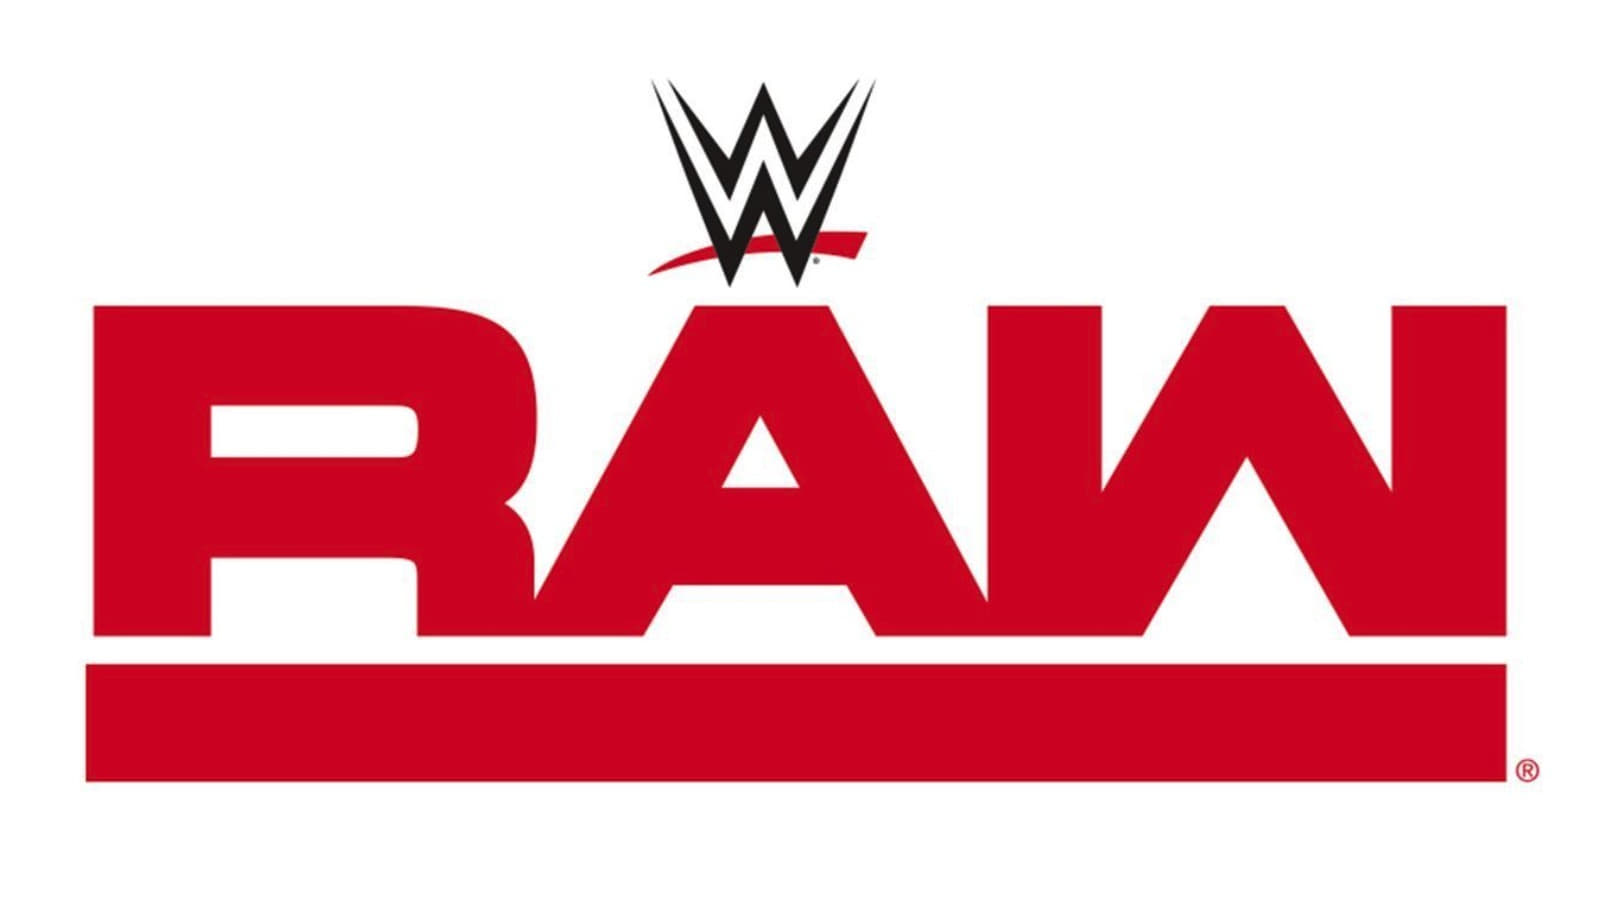 WWE Raw - Season 20 Episode 32 : August 6, 2012